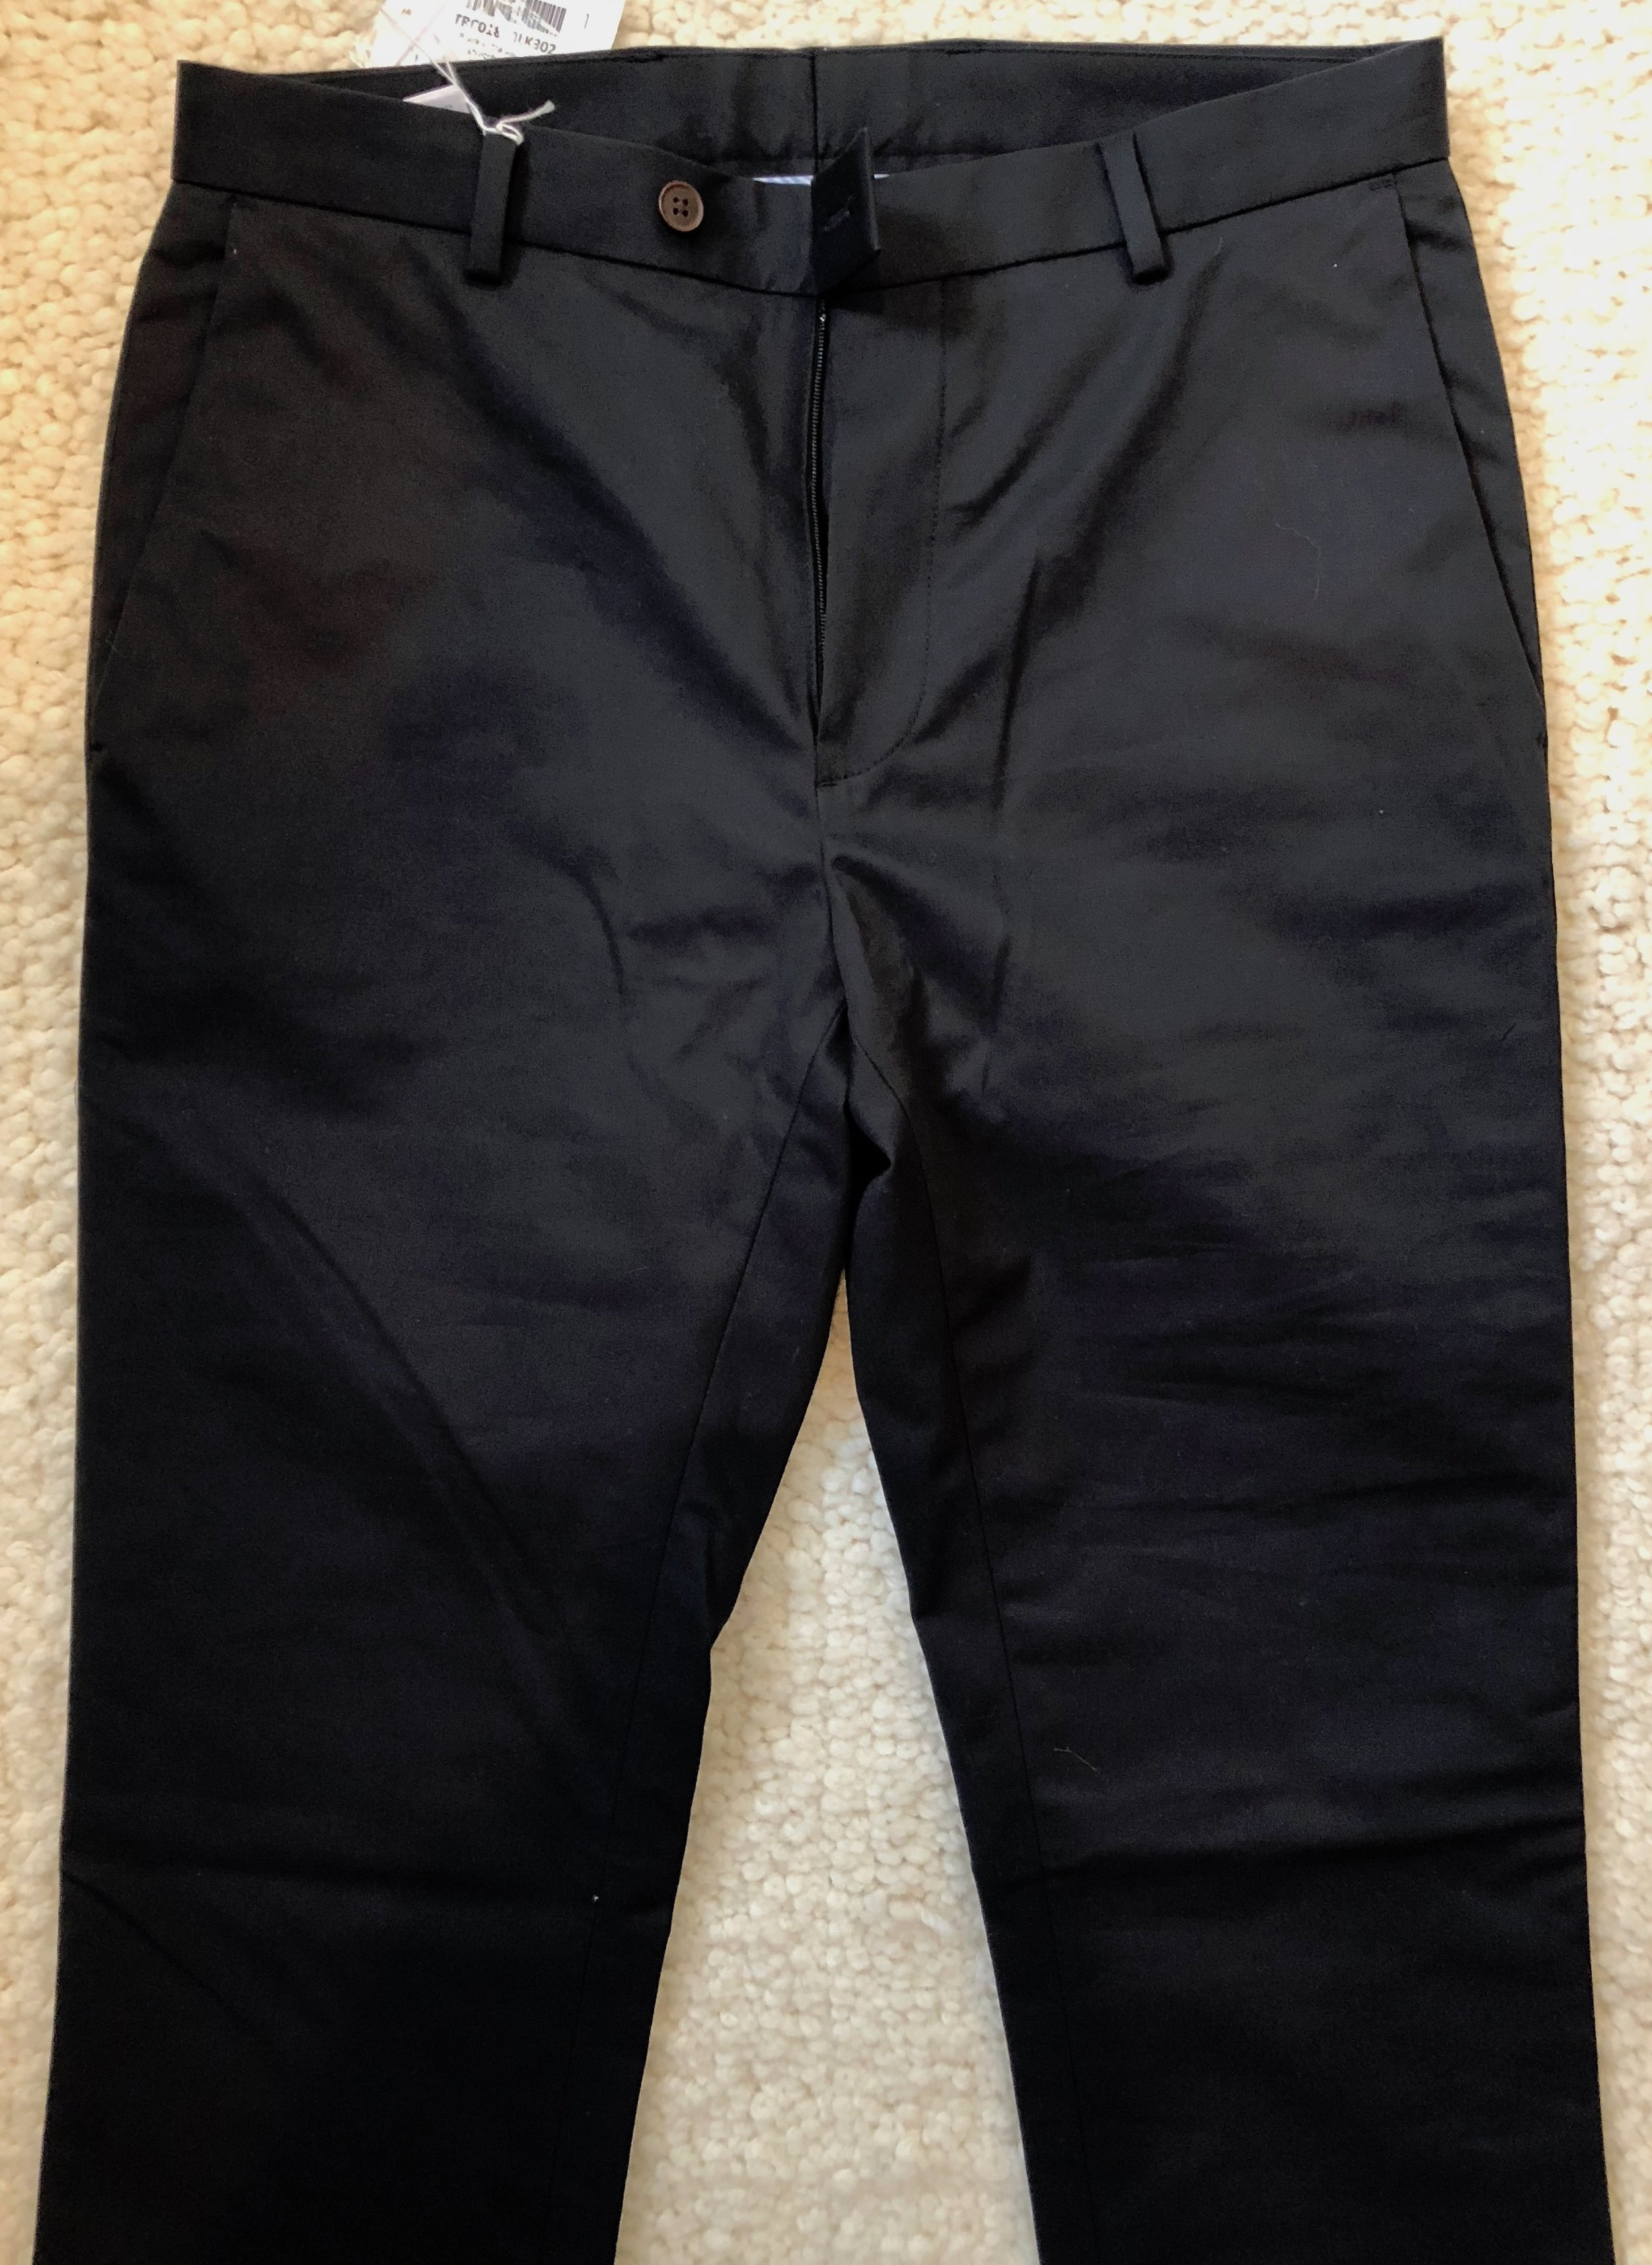 Chinos in black